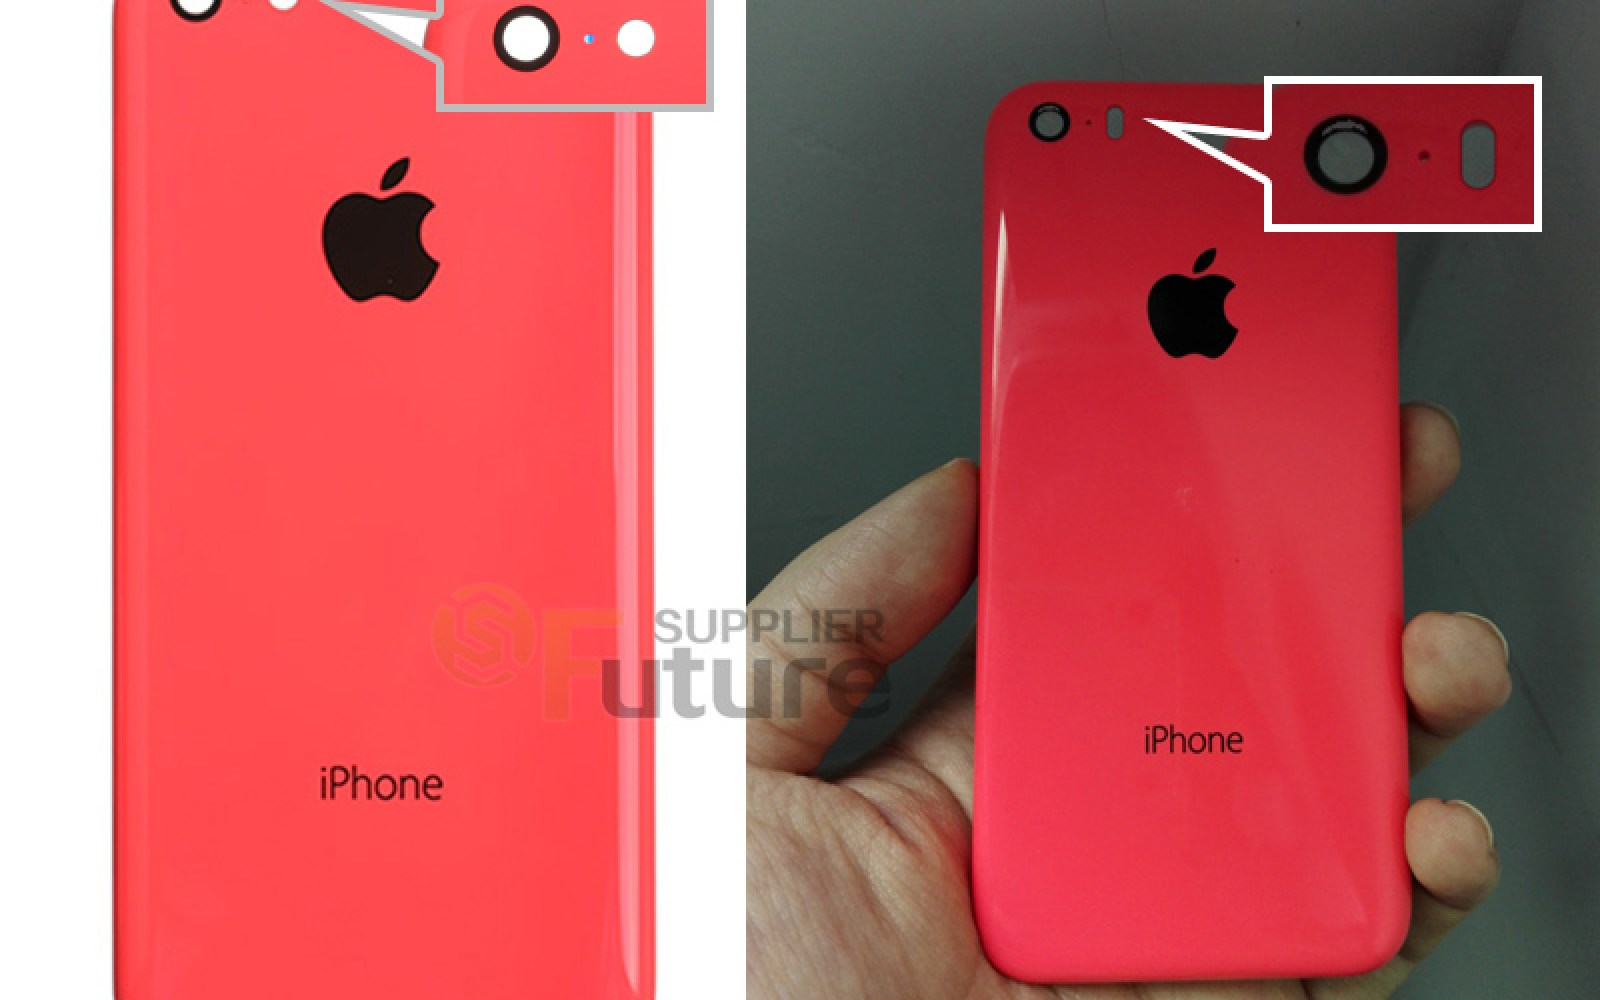 Claimed 'iPhone 6C' rear shell leaks, lends further credence to rumors of new 4-inch model